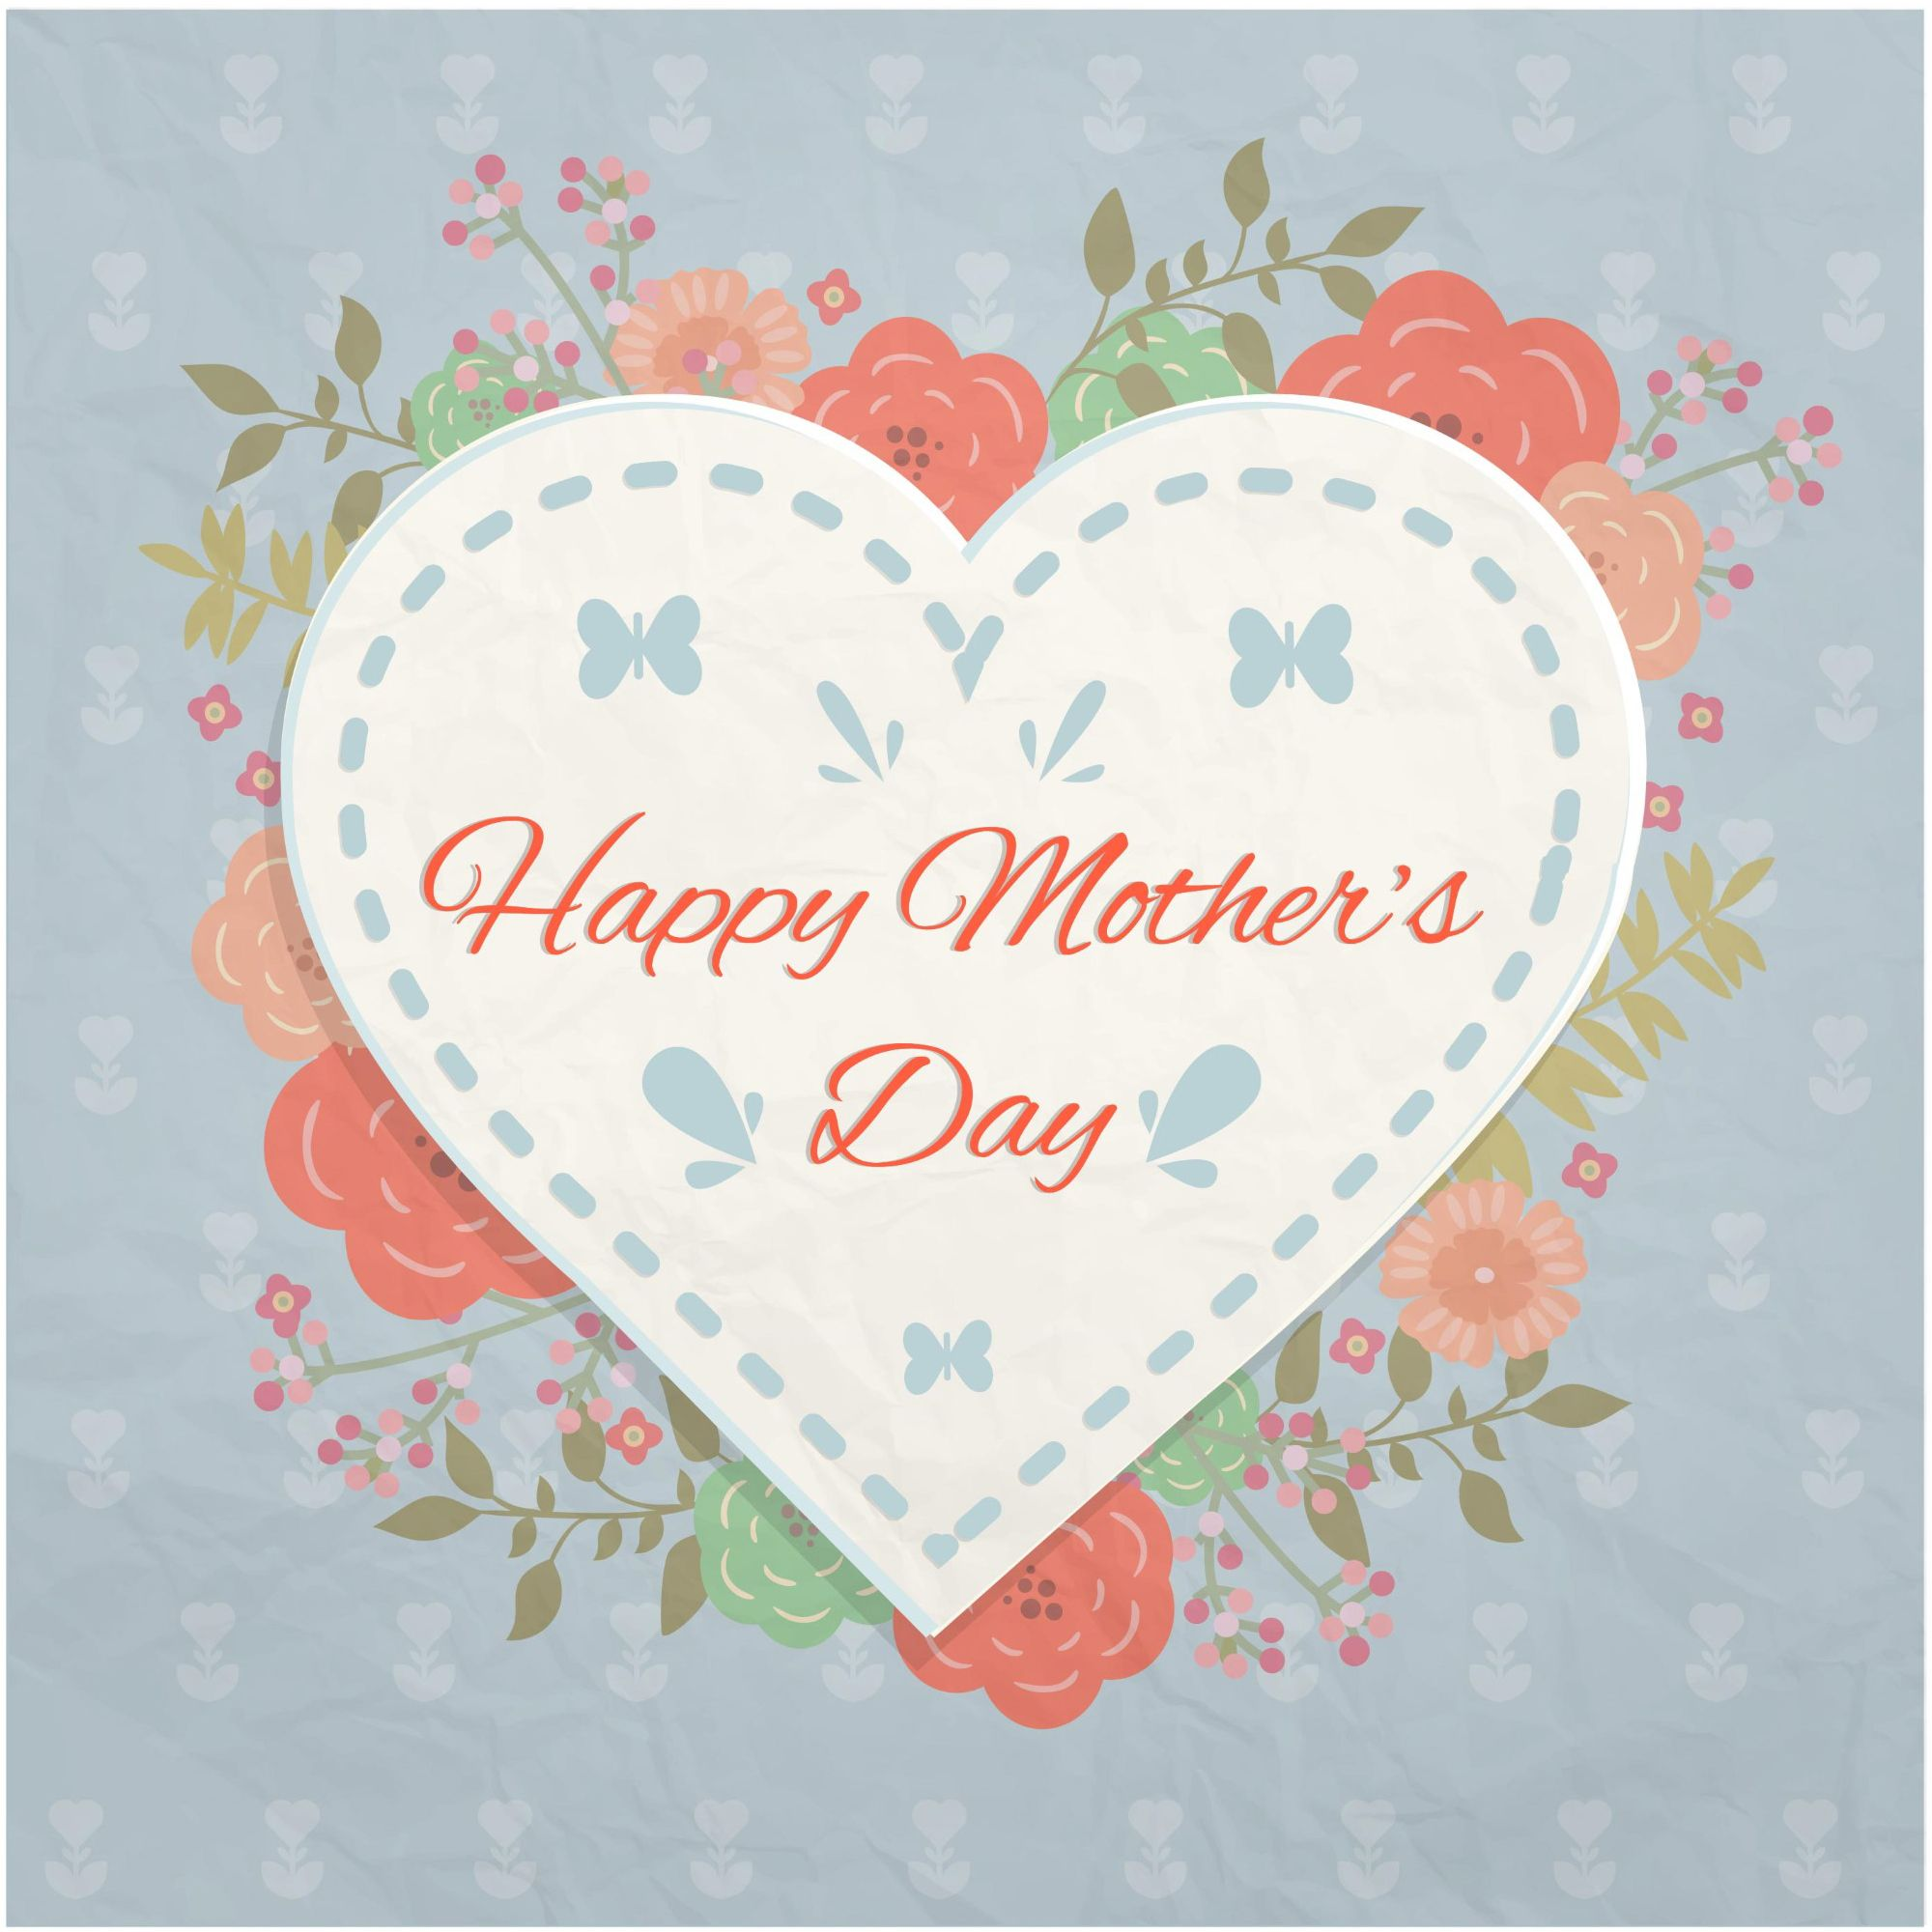 Heart flowers mothers day greetings card free download vector 500 heart flowers mothers day greetings card free download vector kristyandbryce Image collections